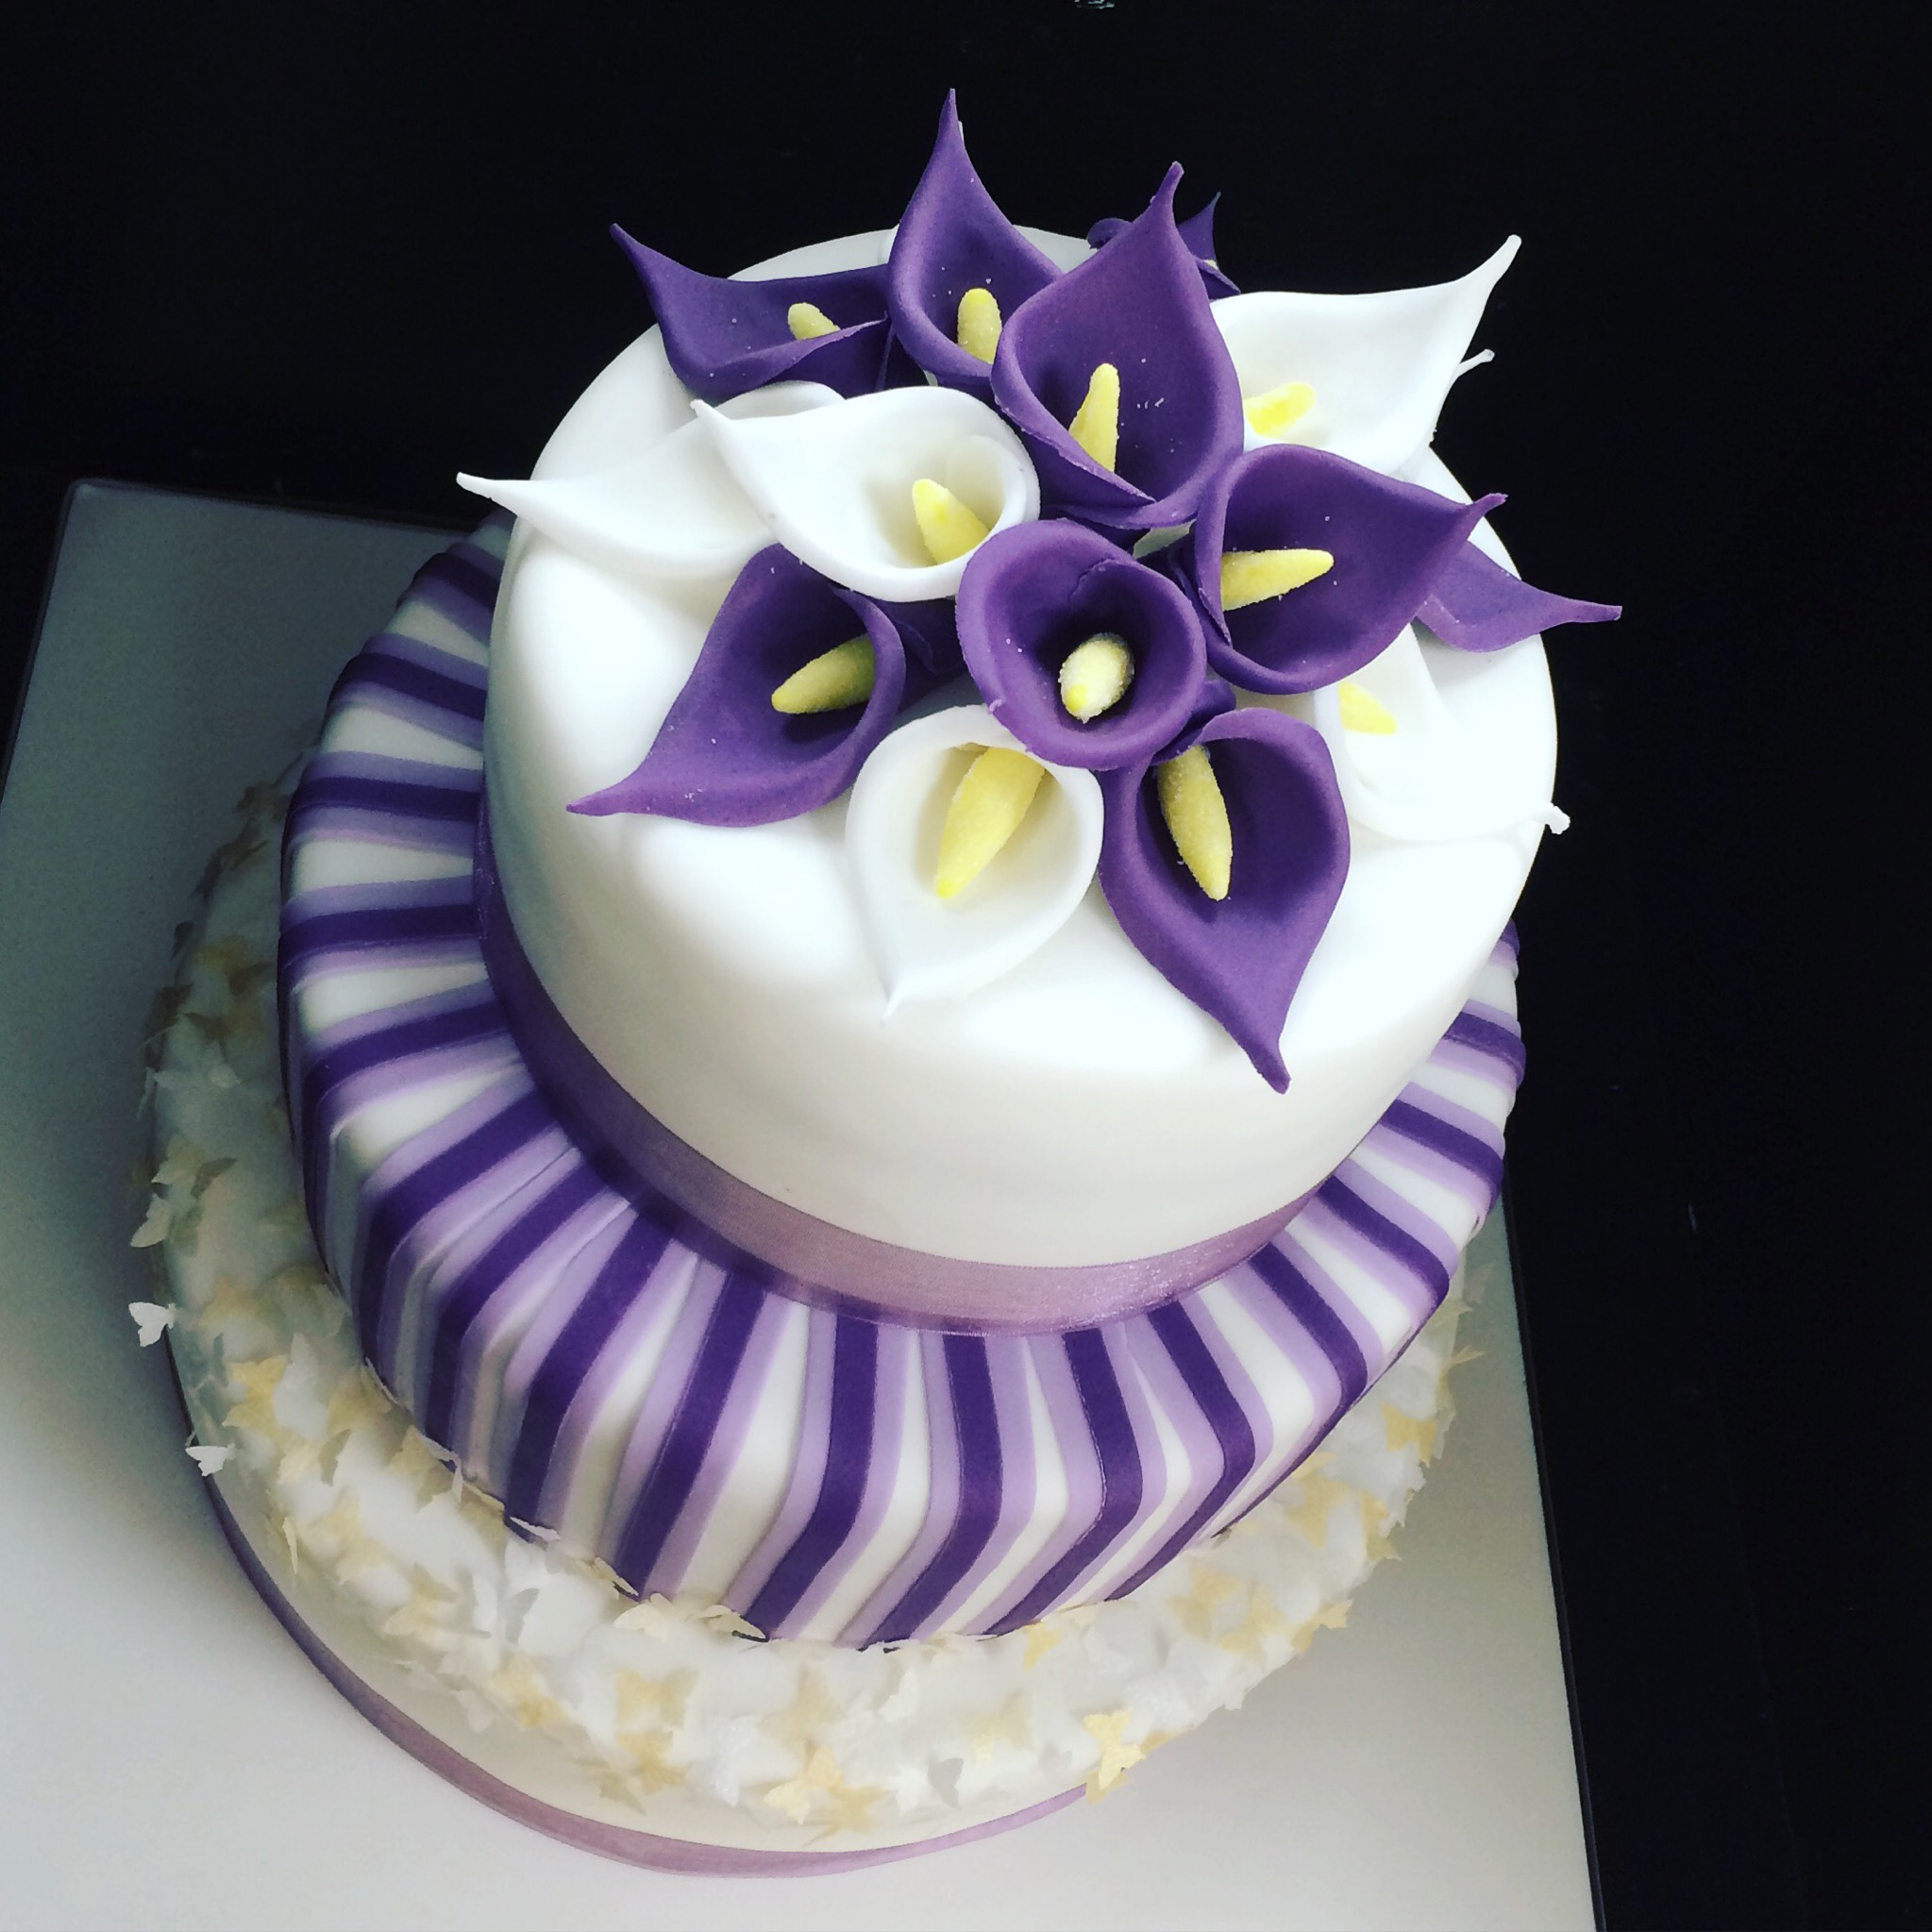 A purple-themed Cala Lilly Birthday Cake with a Kaleidoscope of Gold & Silver Butterflies.